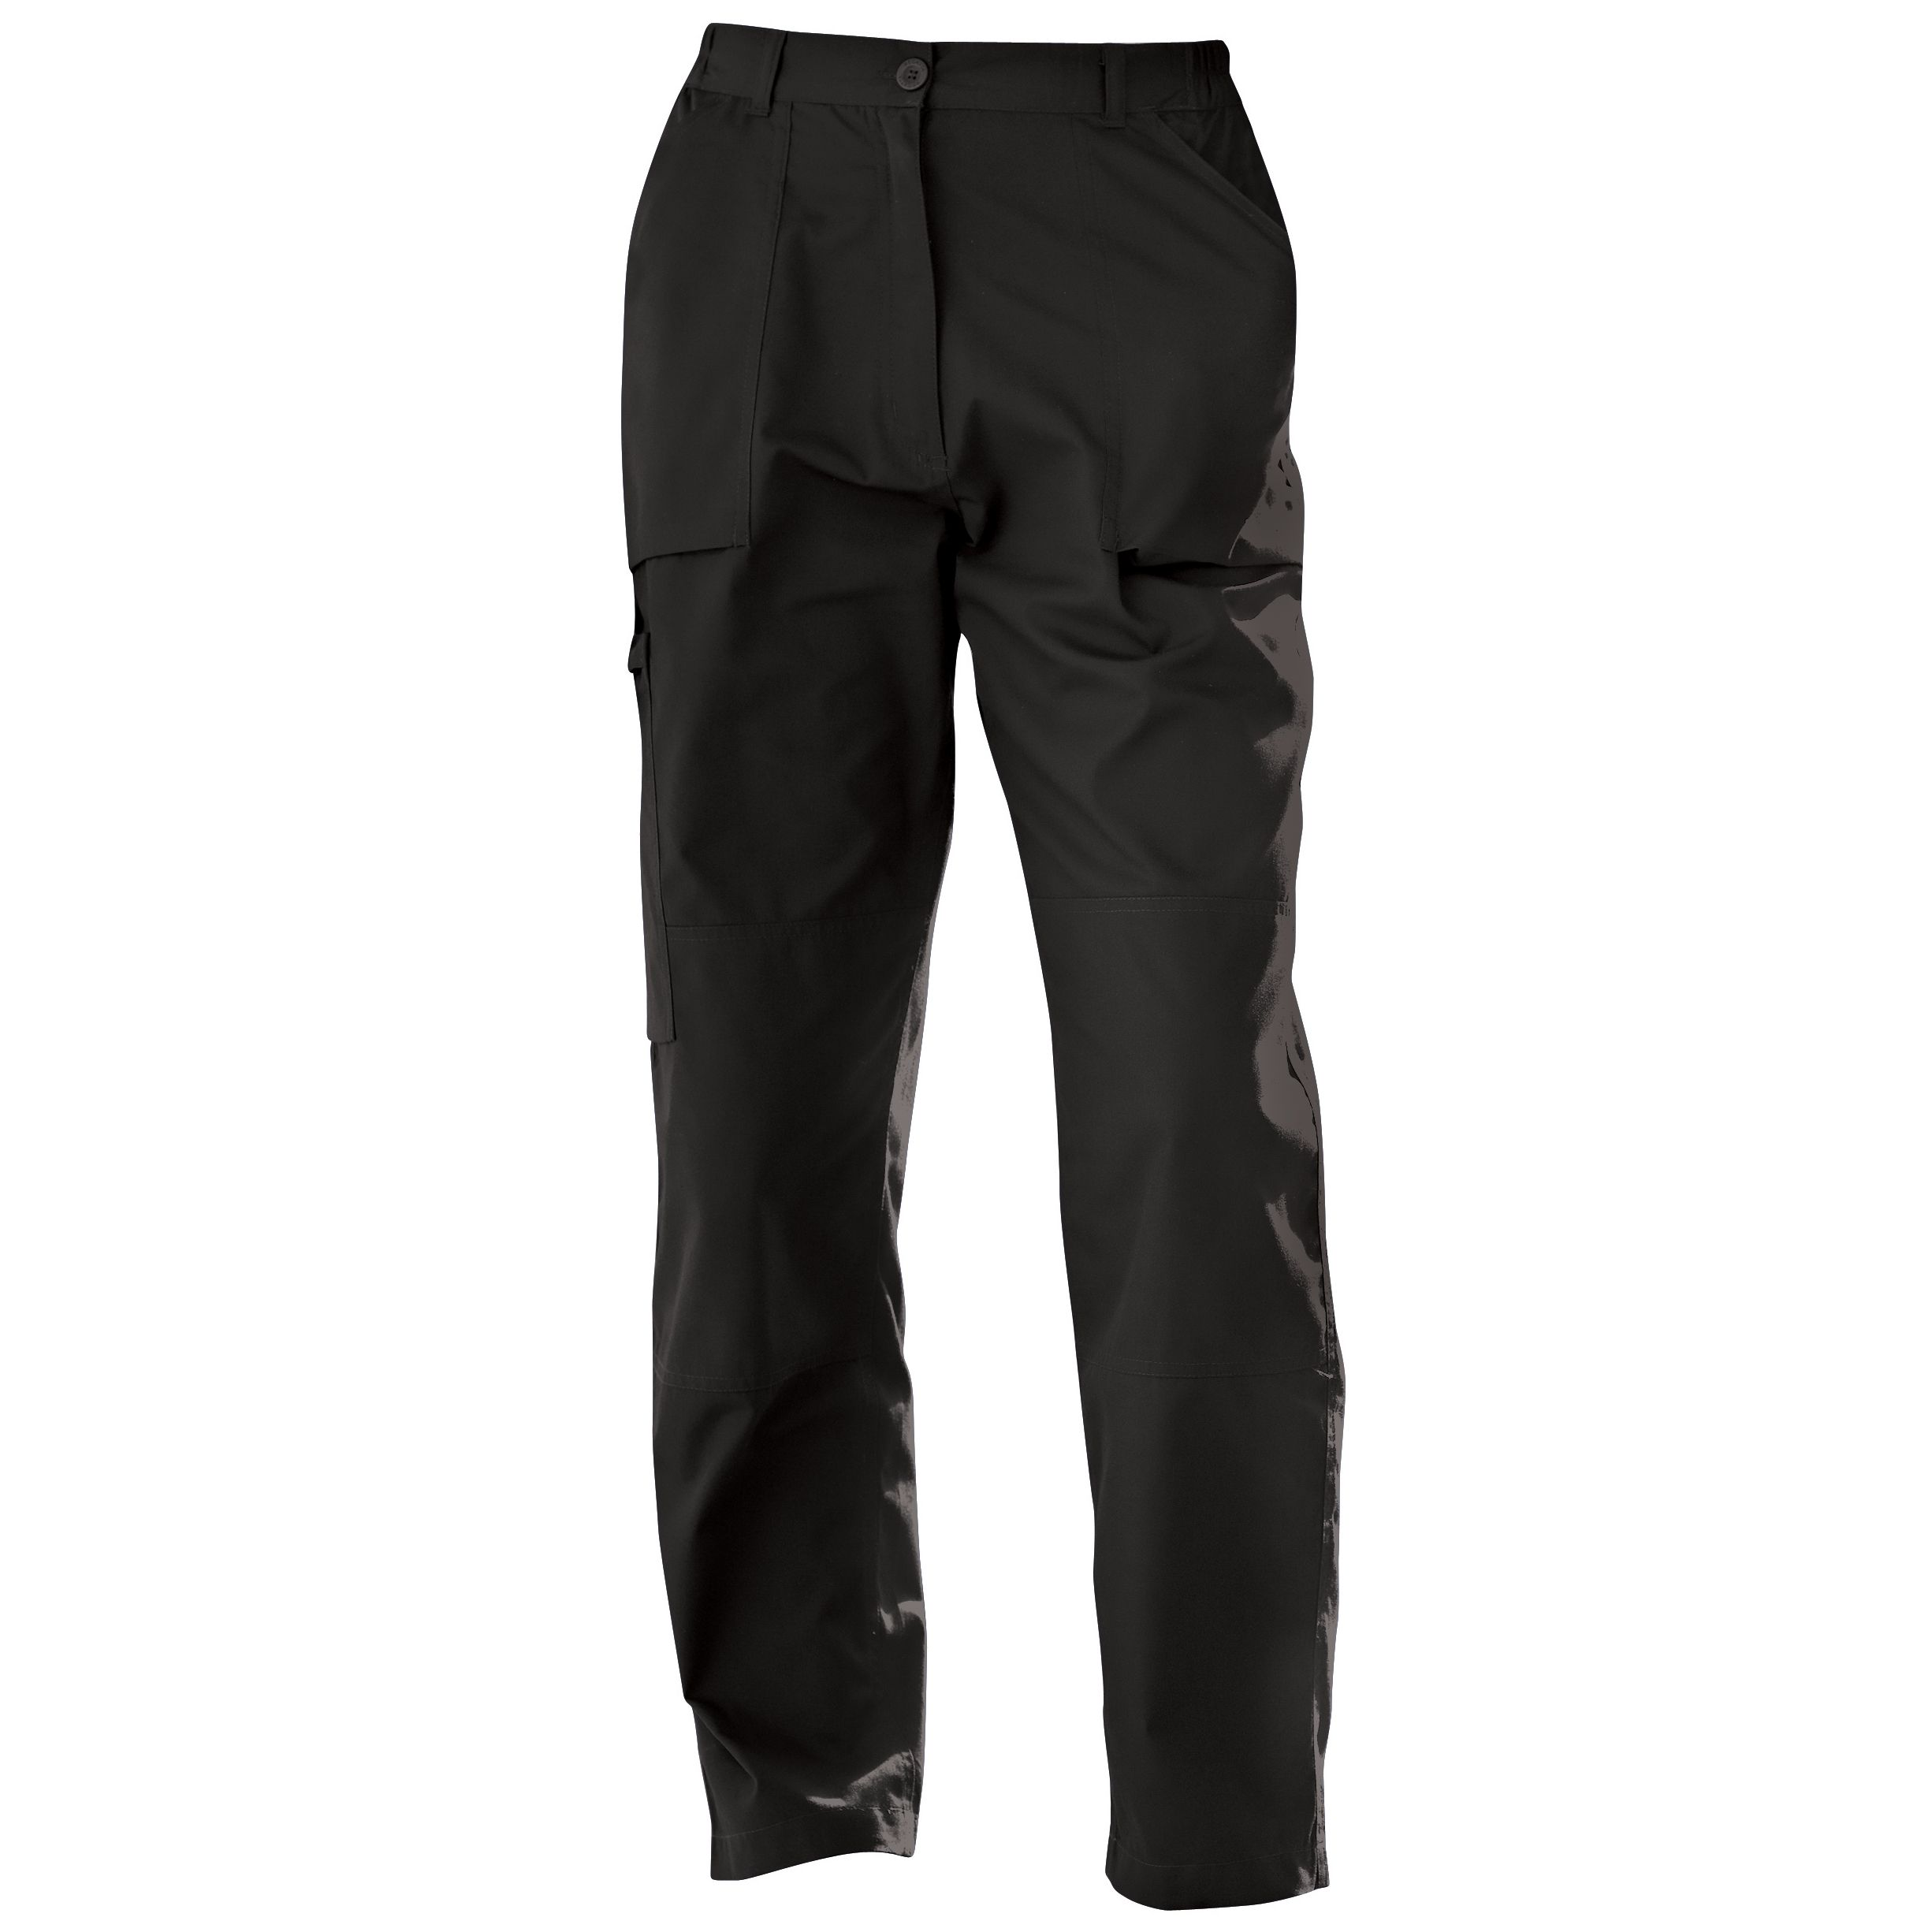 Regatta Womens/Ladies New Action Water Repellent Trousers